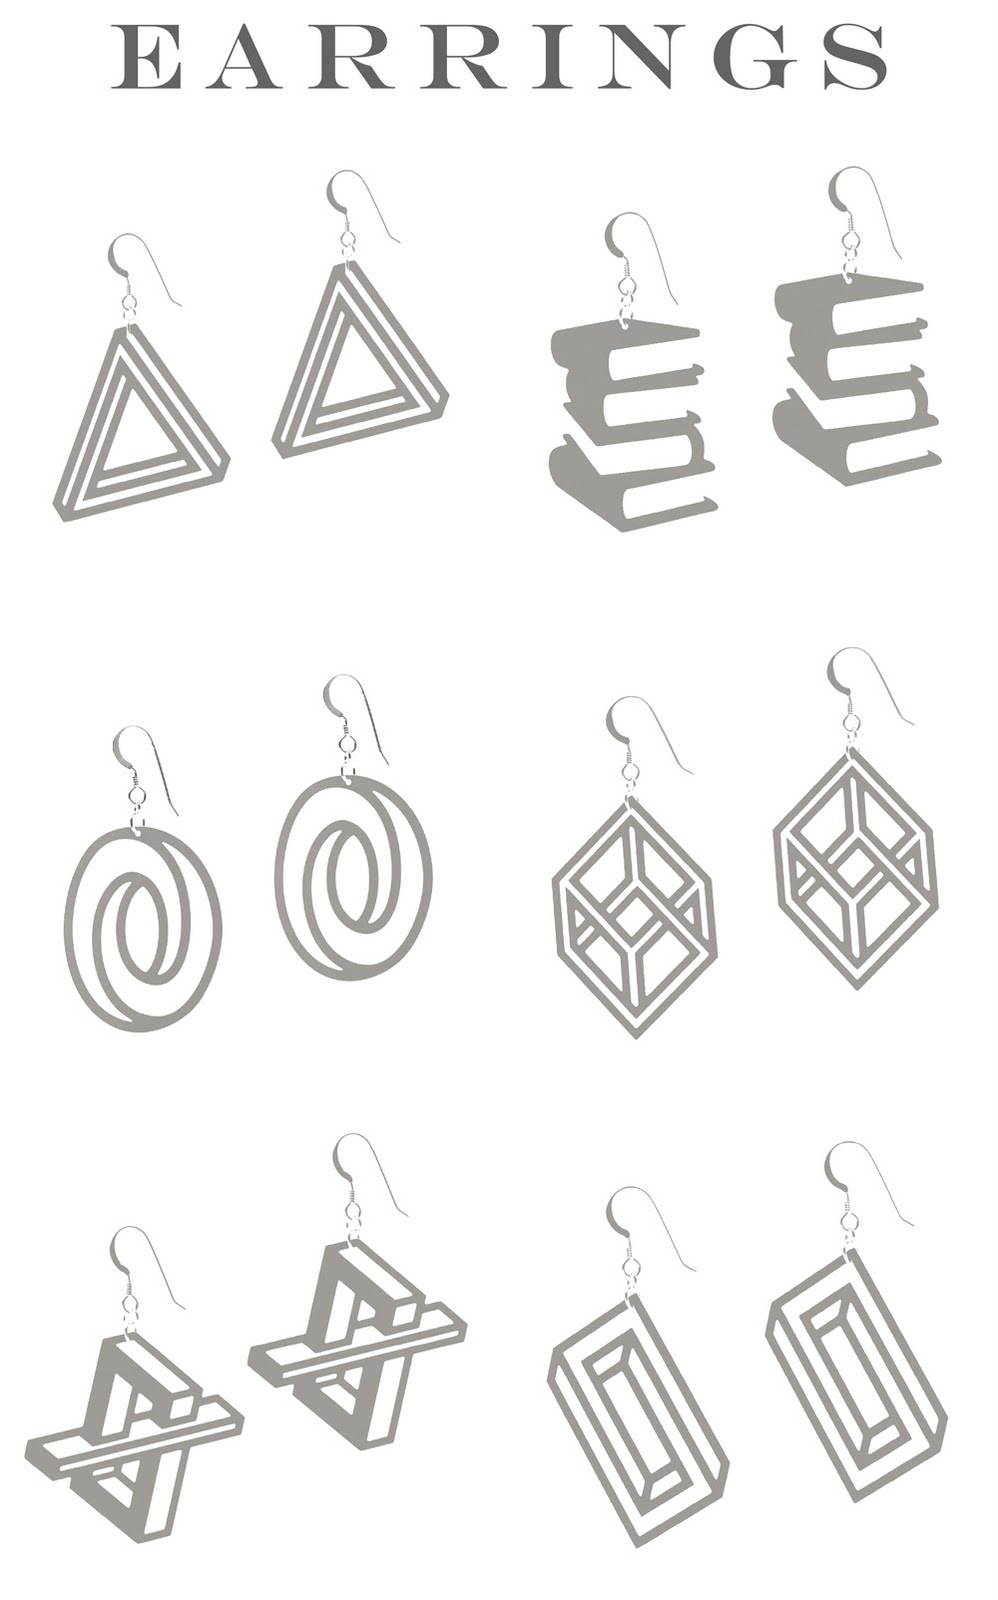 Aroha Silhouettes Stainless Phantasmal collection optical illusion earrings made from stainless steel